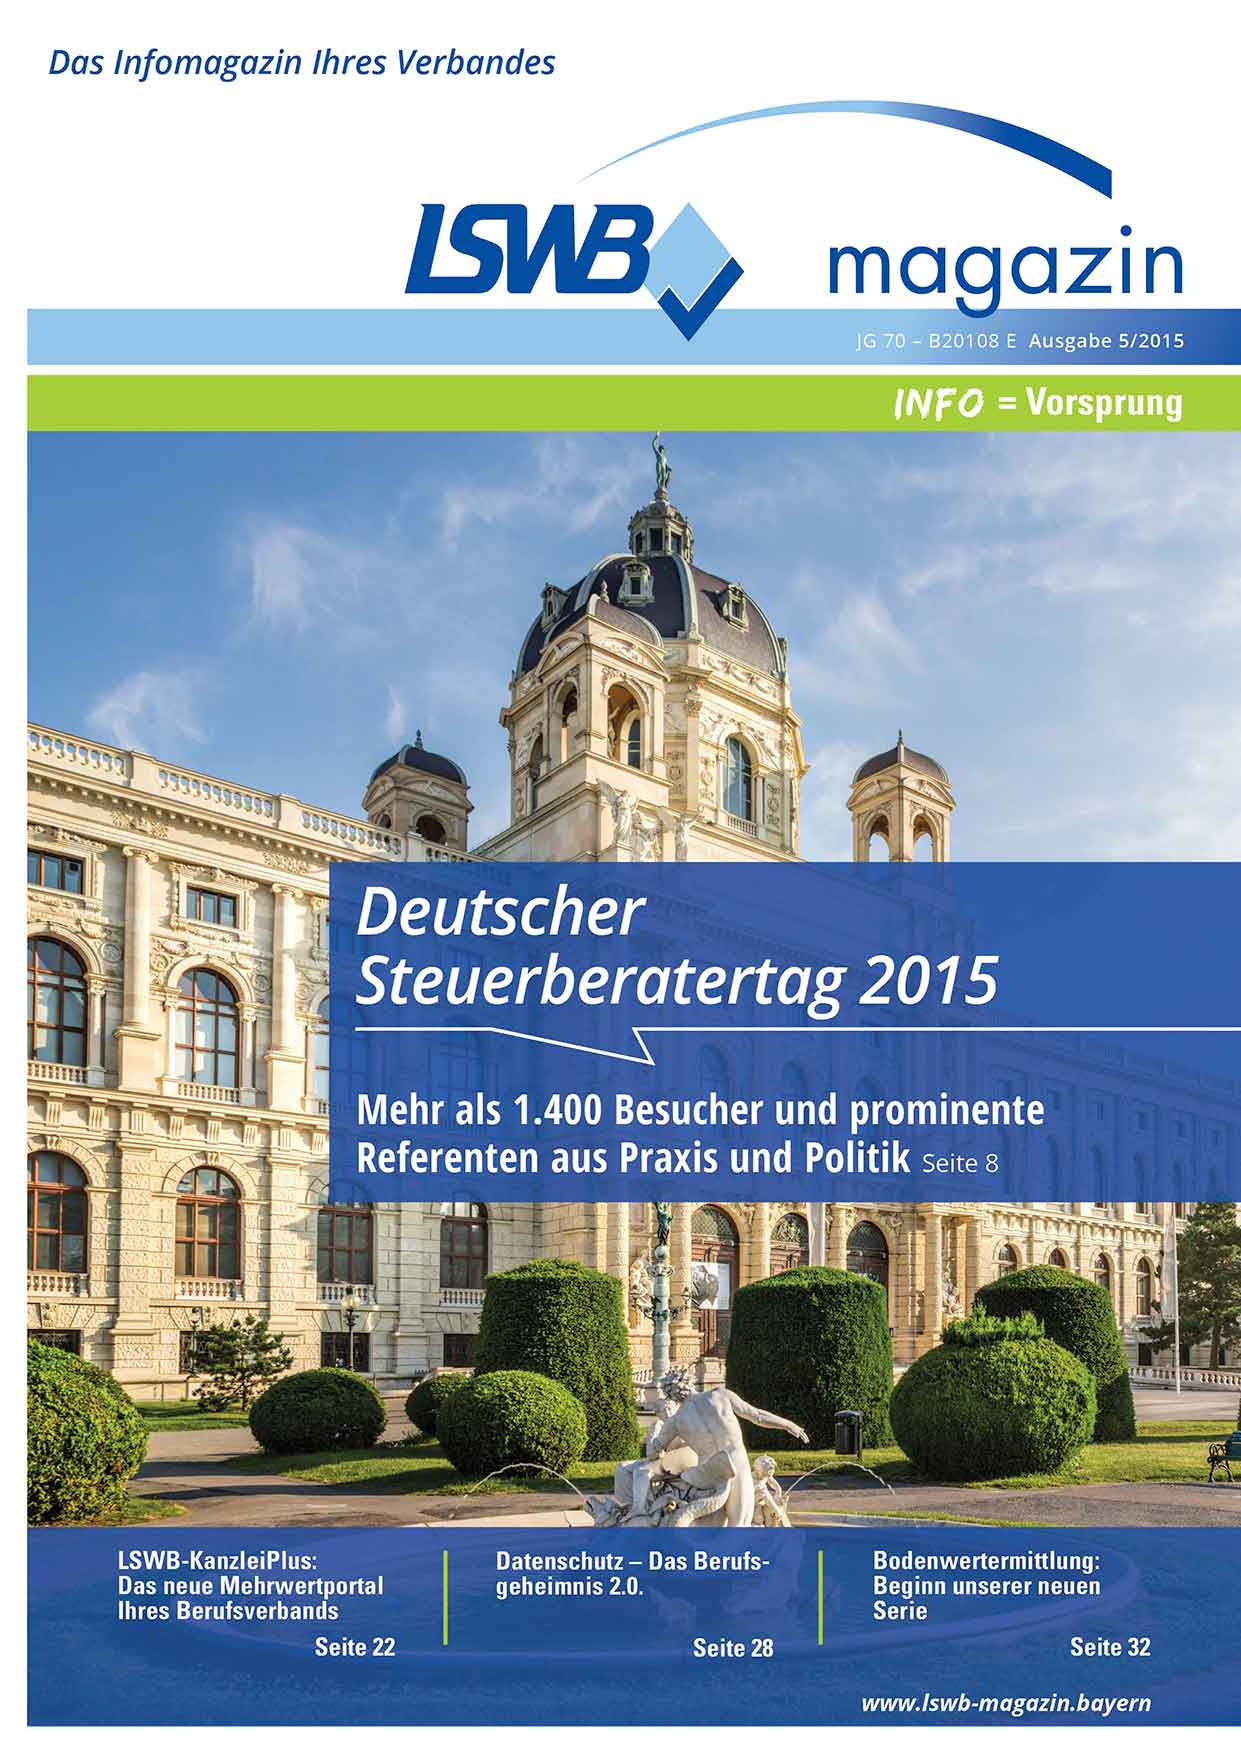 LSWB-Magazin 5/2015: Deutscher Steuerberatertag